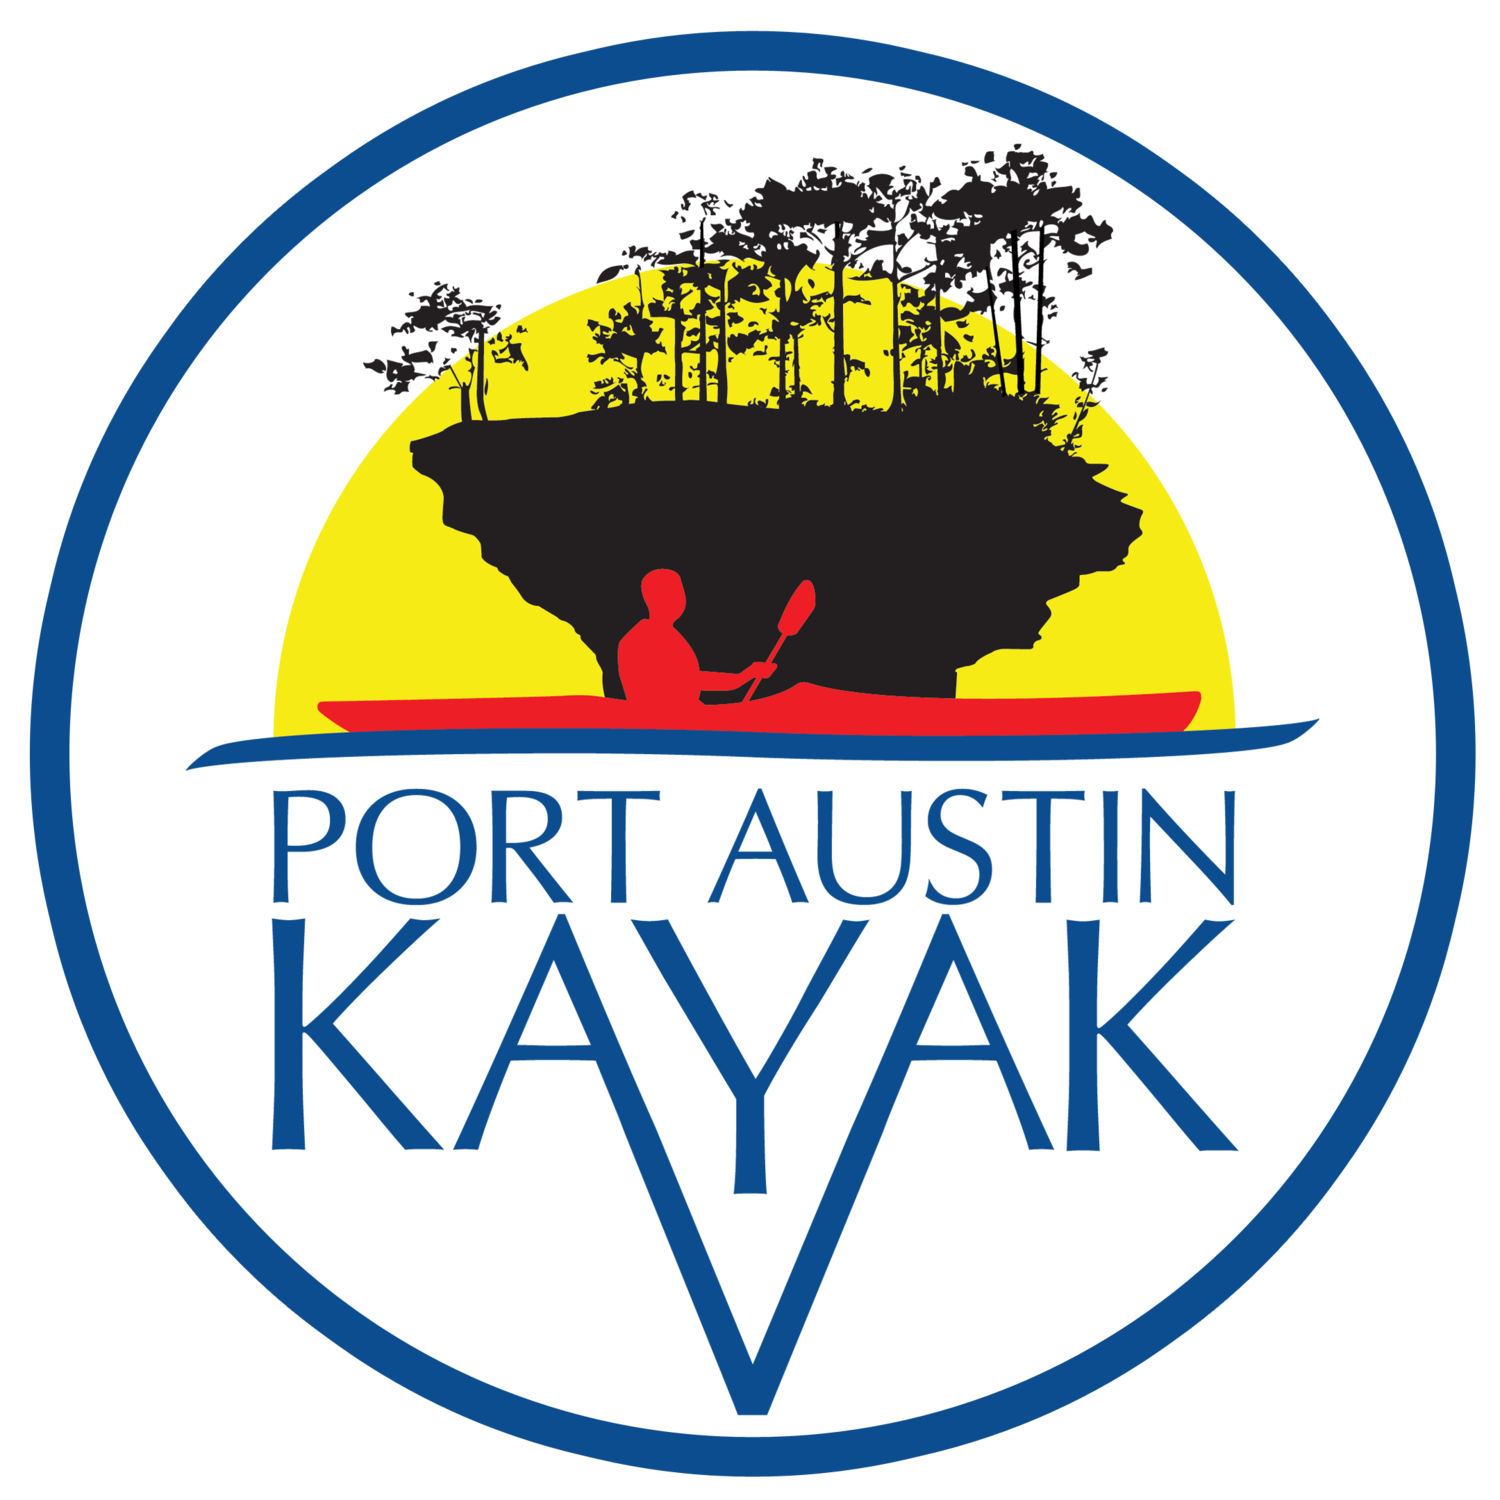 Port Austin Kayak & Stand Up Paddle Board Rental